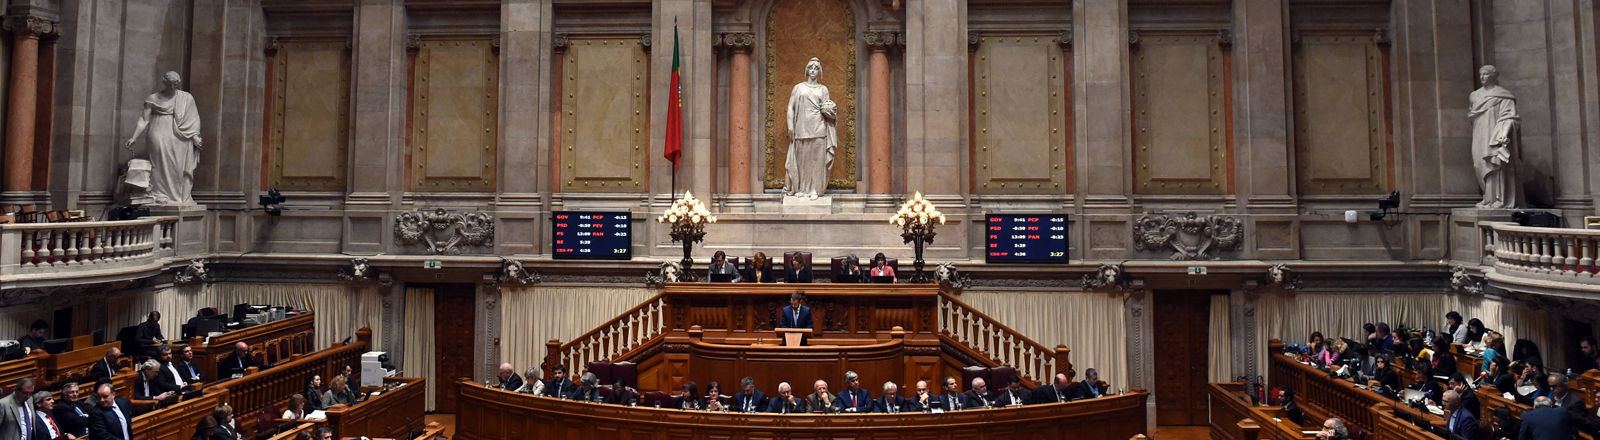 Portugiesisches Parlament in Lissabon